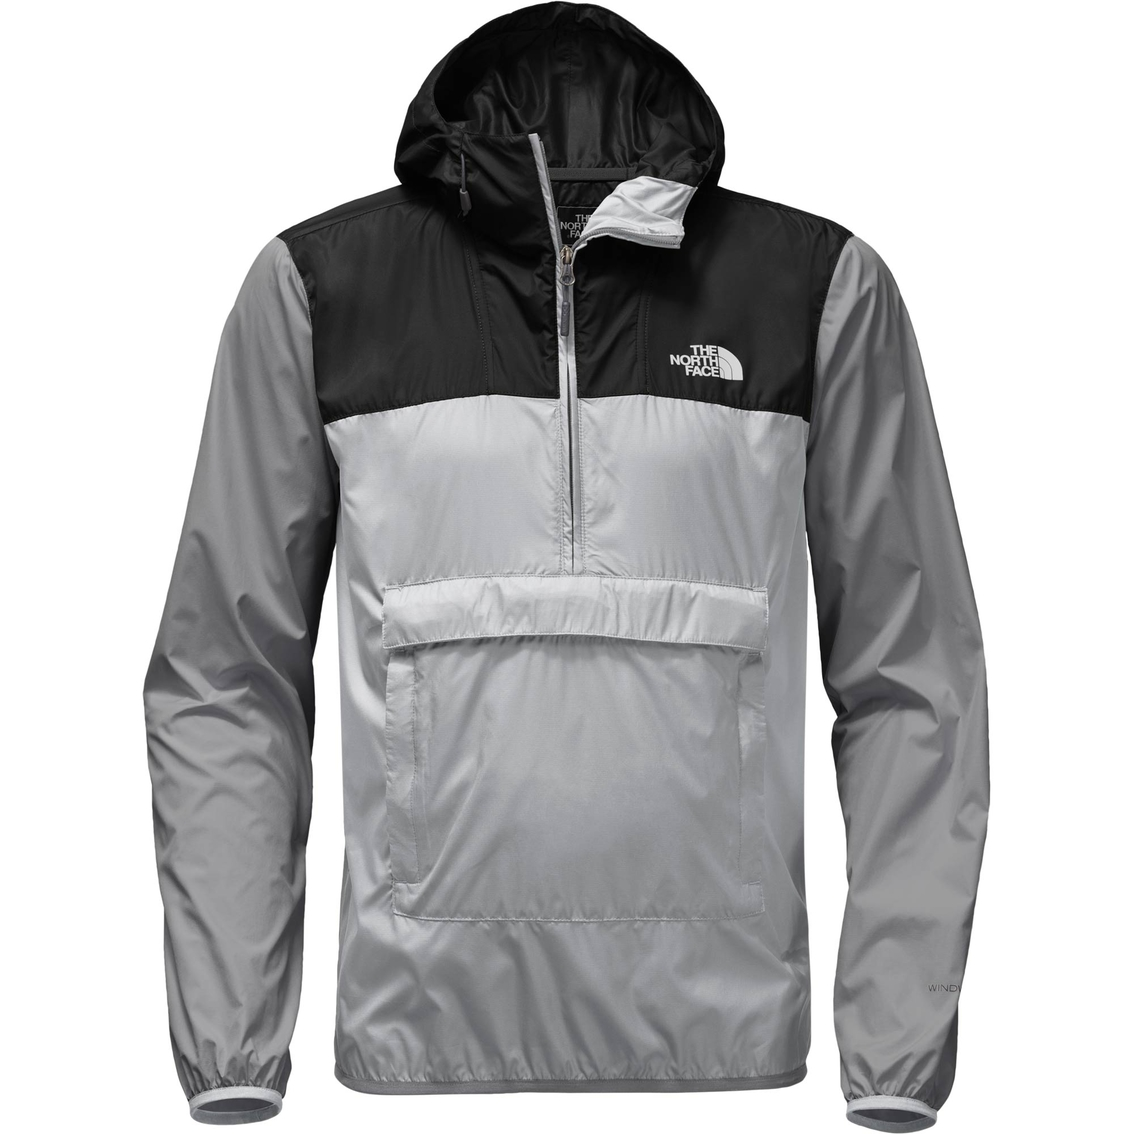 3ef0ce6ab The North Face Fanorak Jacket   Jackets   Apparel   Shop The Exchange